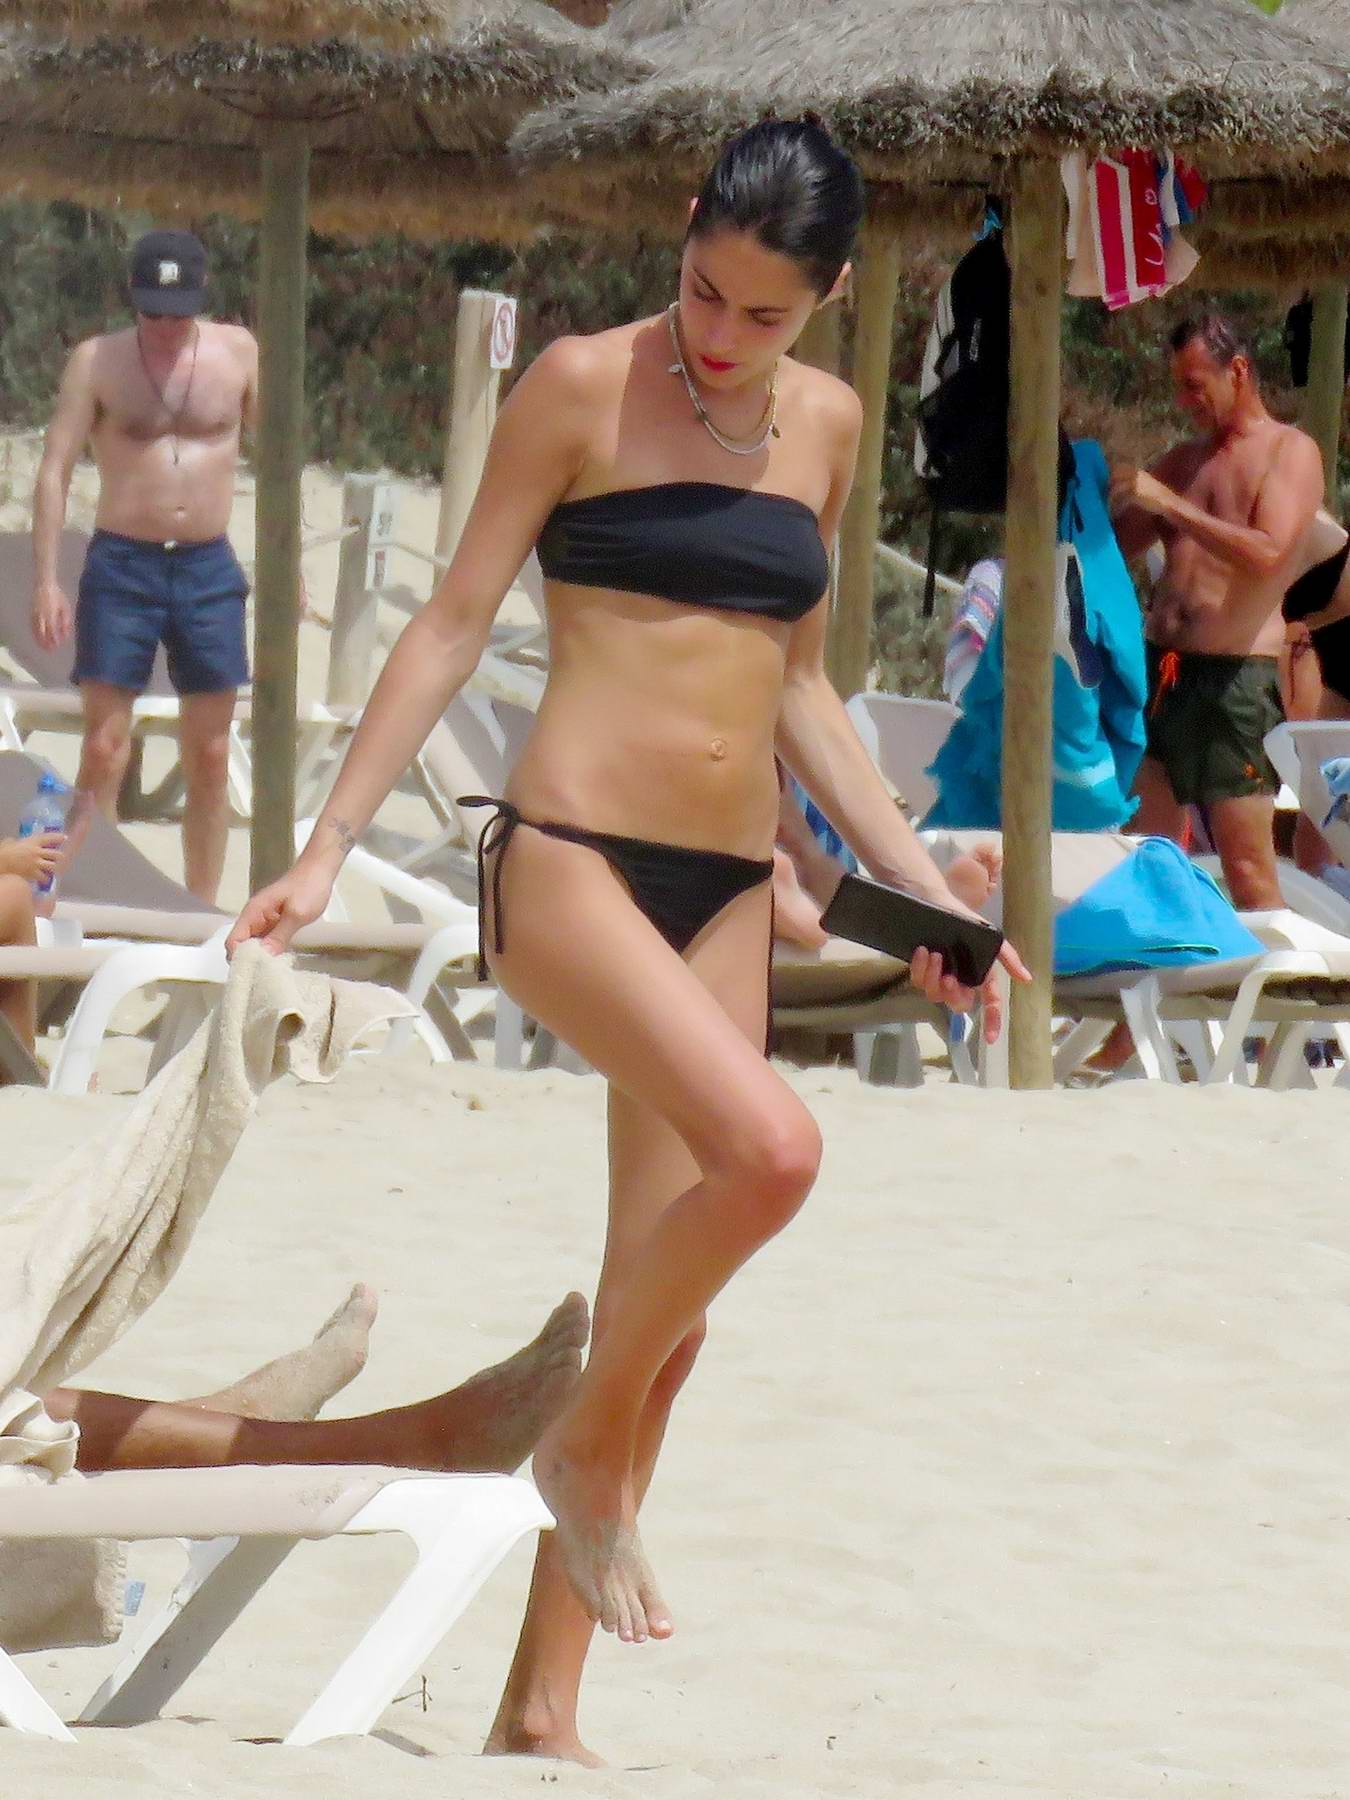 Martina Stoessel in a Black Bikini on a beach holiday with Pepe Barroso in Formentera, Spain